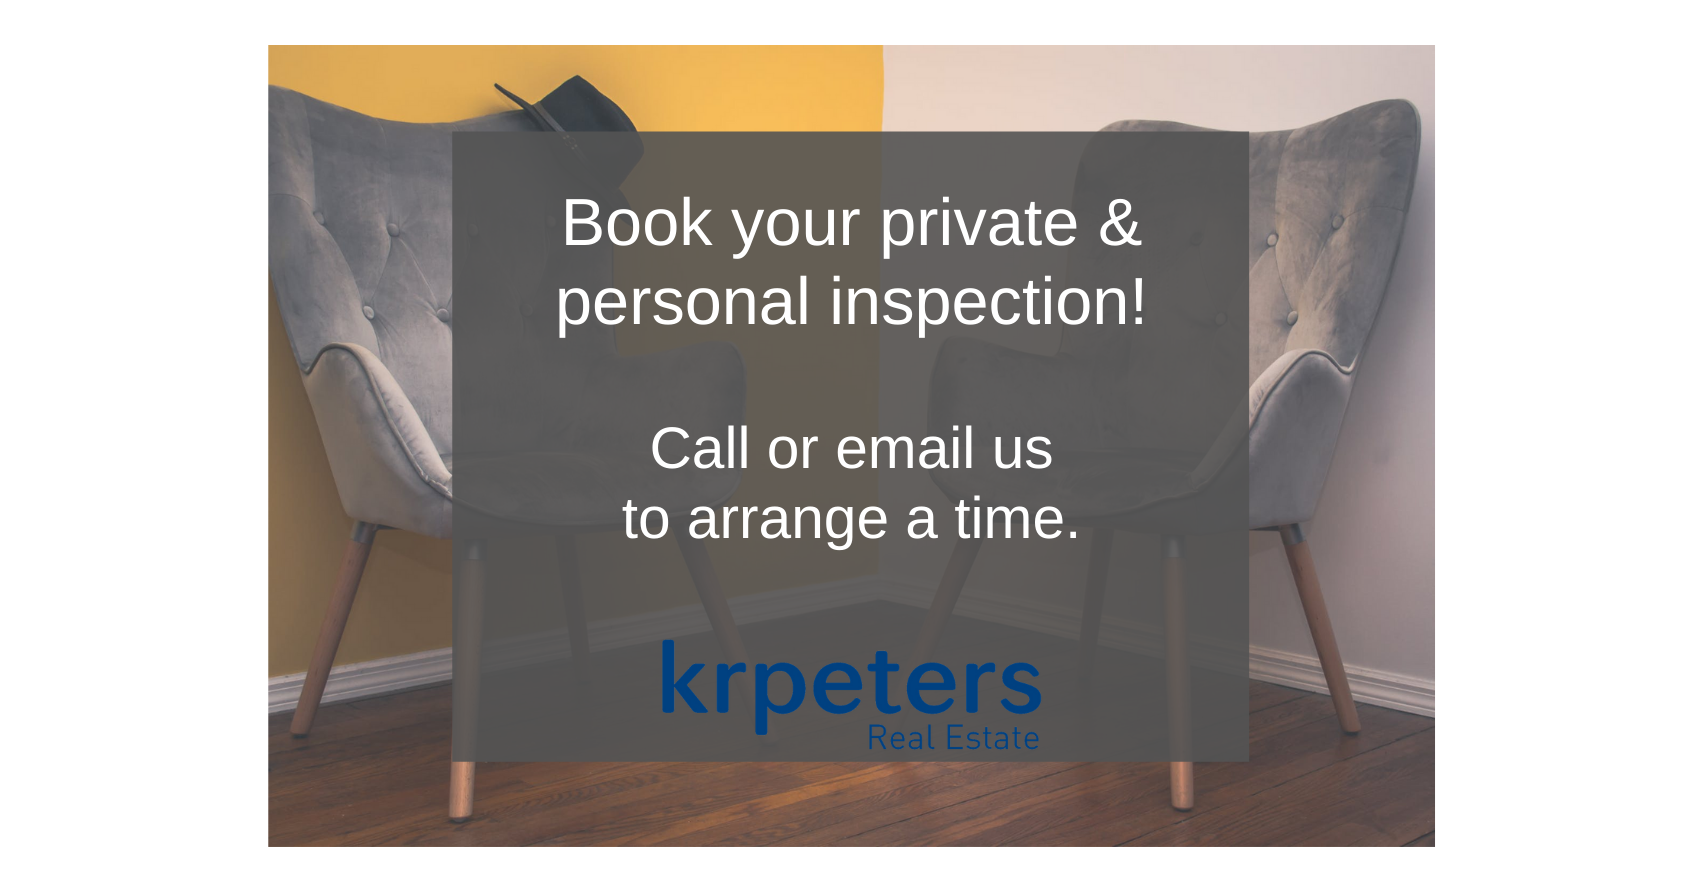 Book your private inspection